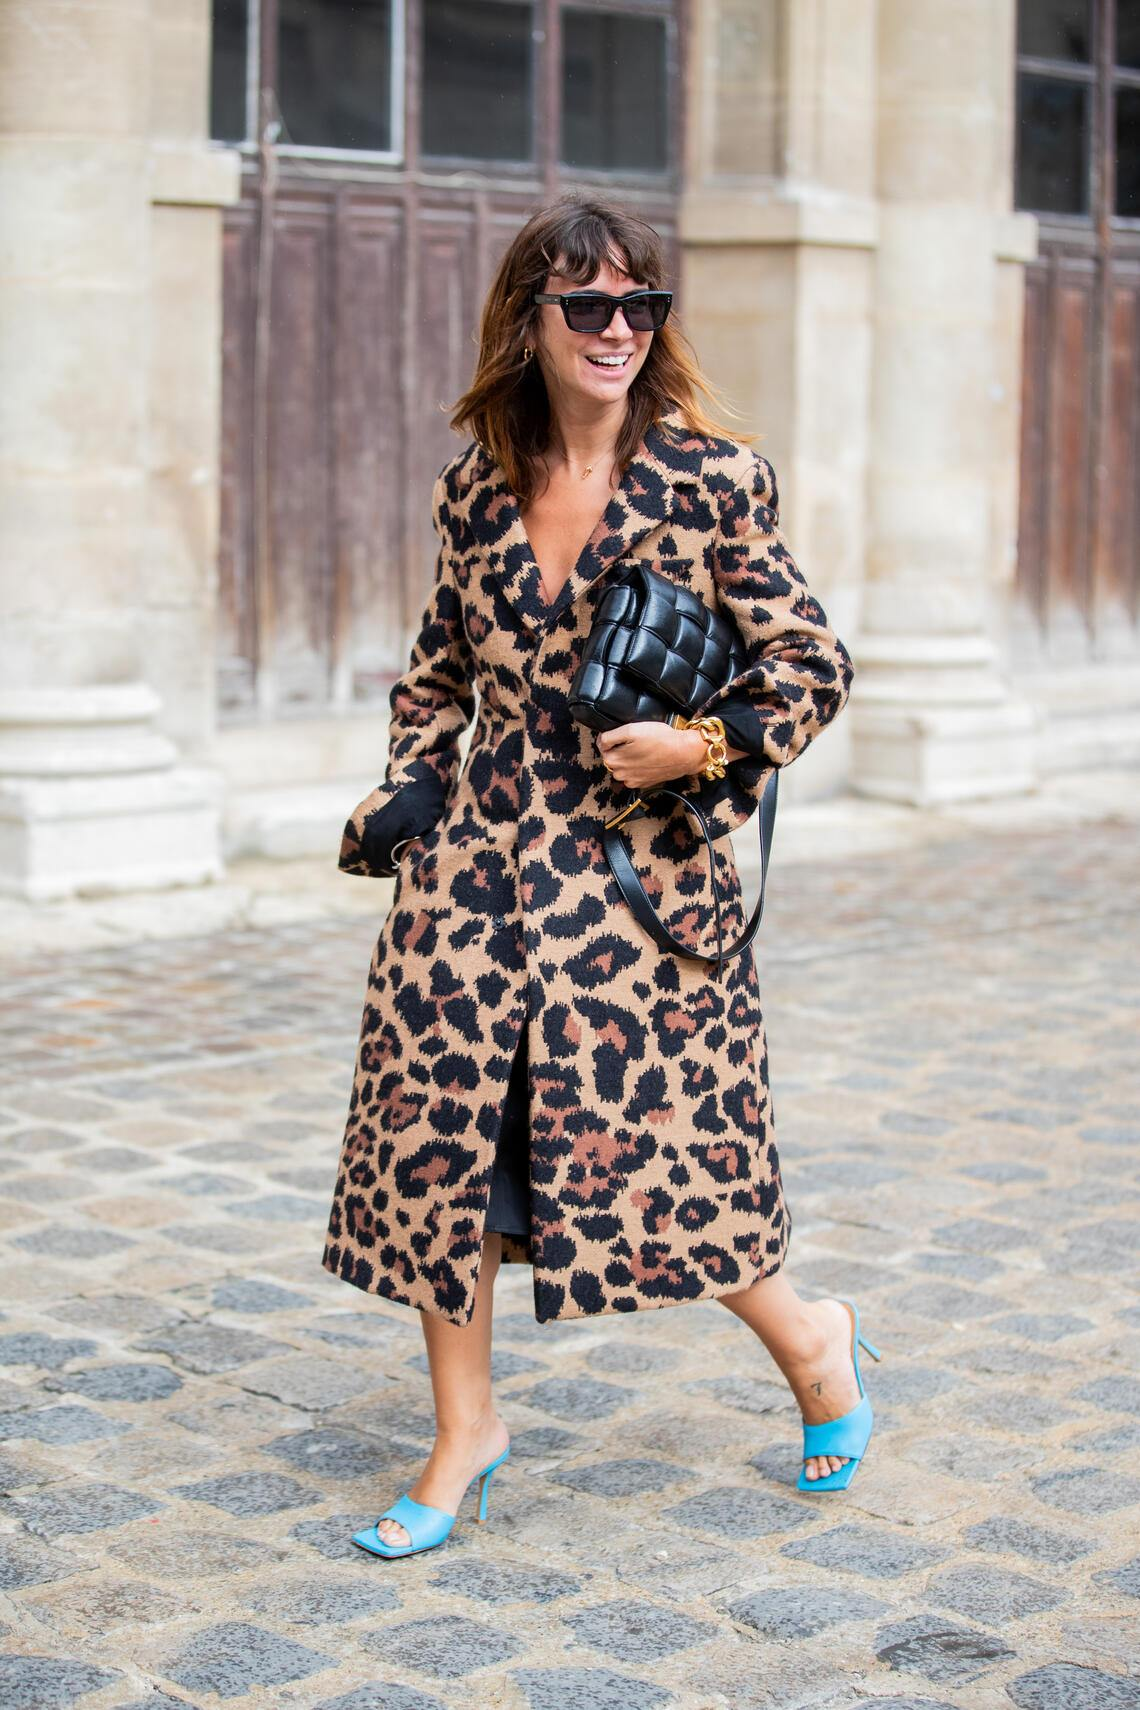 PARIS, FRANCE - SEPTEMBER 29: Natasha Goldenberg is seen wearing coat with animal print, black bag outside Thom Browne during Paris Fashion Week Womenswear Spring Summer 2020 on September 29, 2019 in Paris, France. (Photo by Christian Vierig/Getty Images)